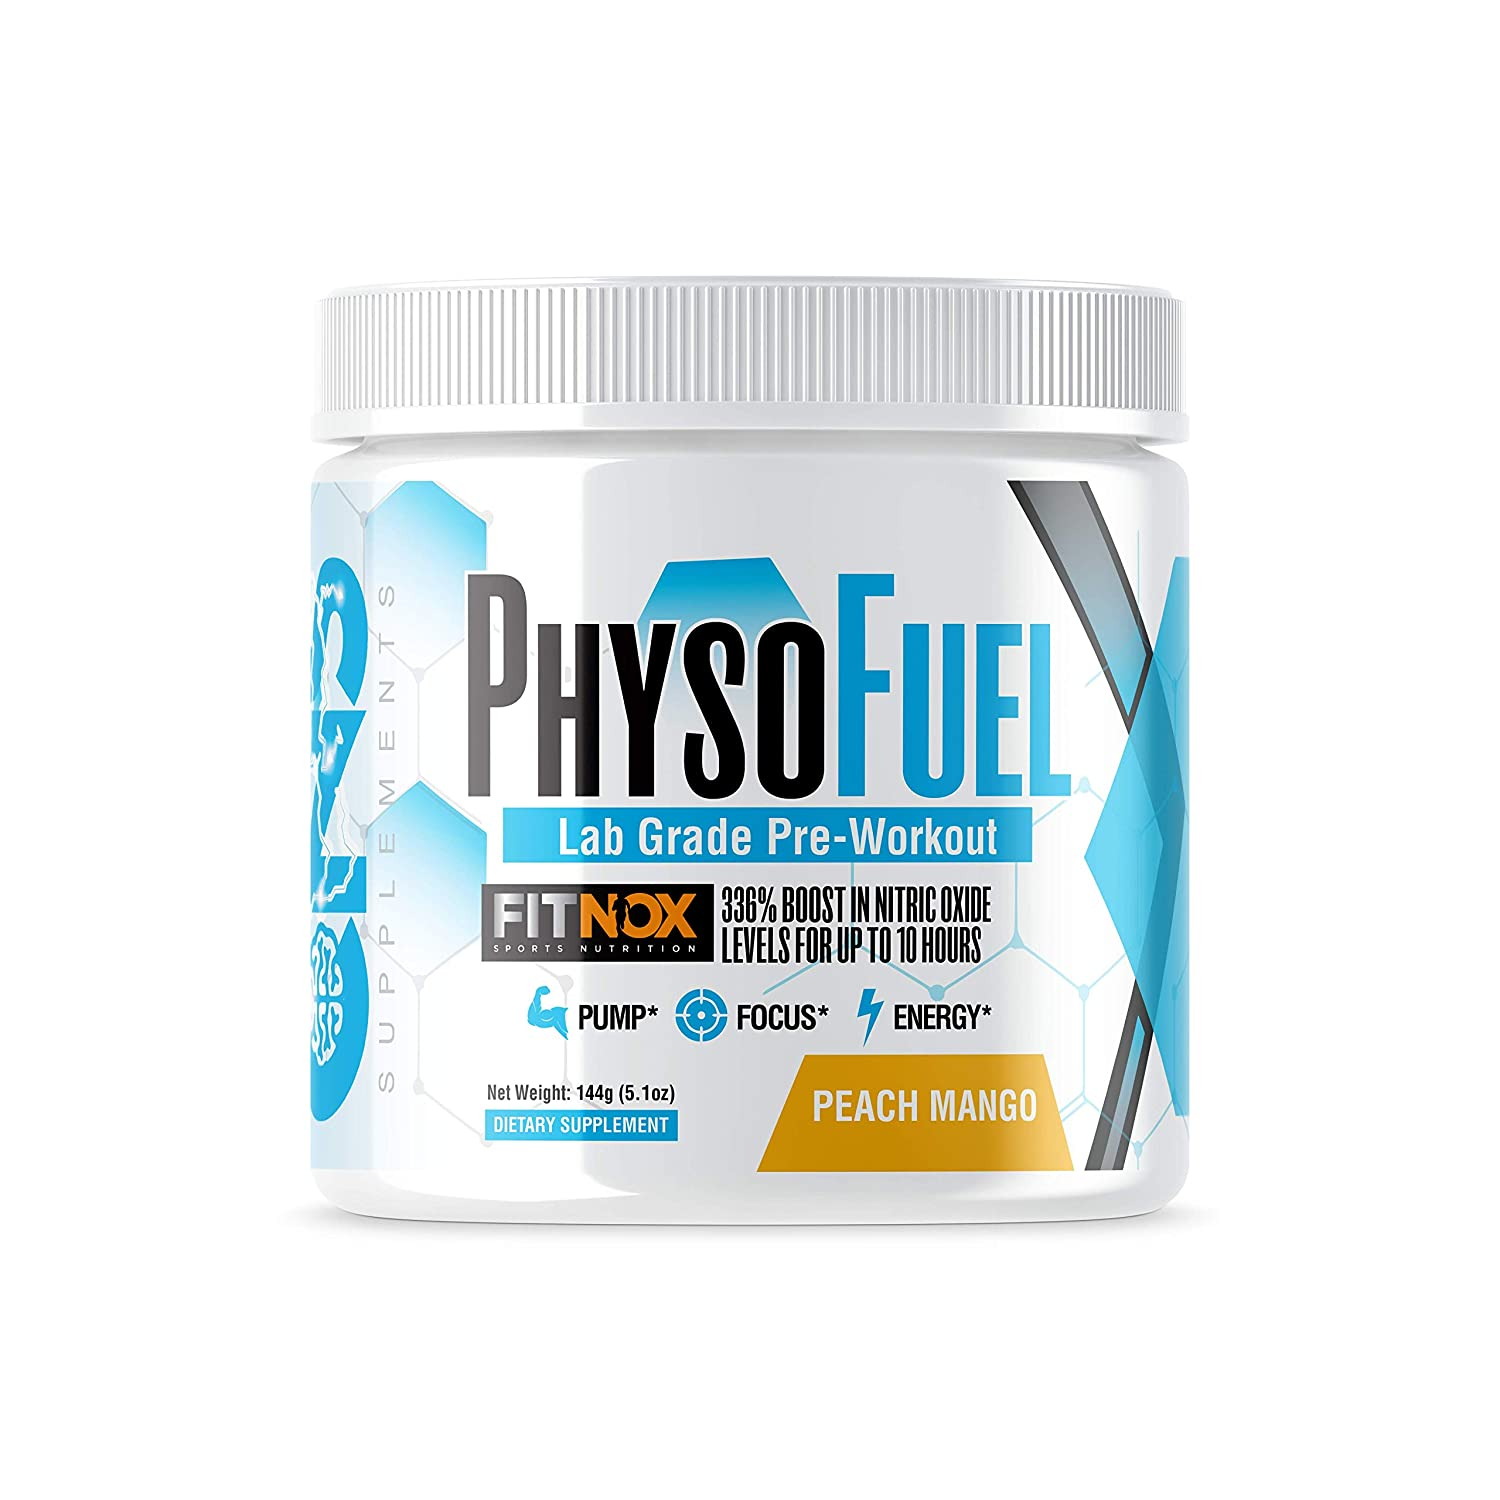 PhysoFuel Pre Workout -New Patented FitNox, 336 Plant Based Blood Flow Boost -Moderate Caffeine, Tingle and Jitter Free, Sustained Energy Pre-Workout -20 Servings -Peach Mango